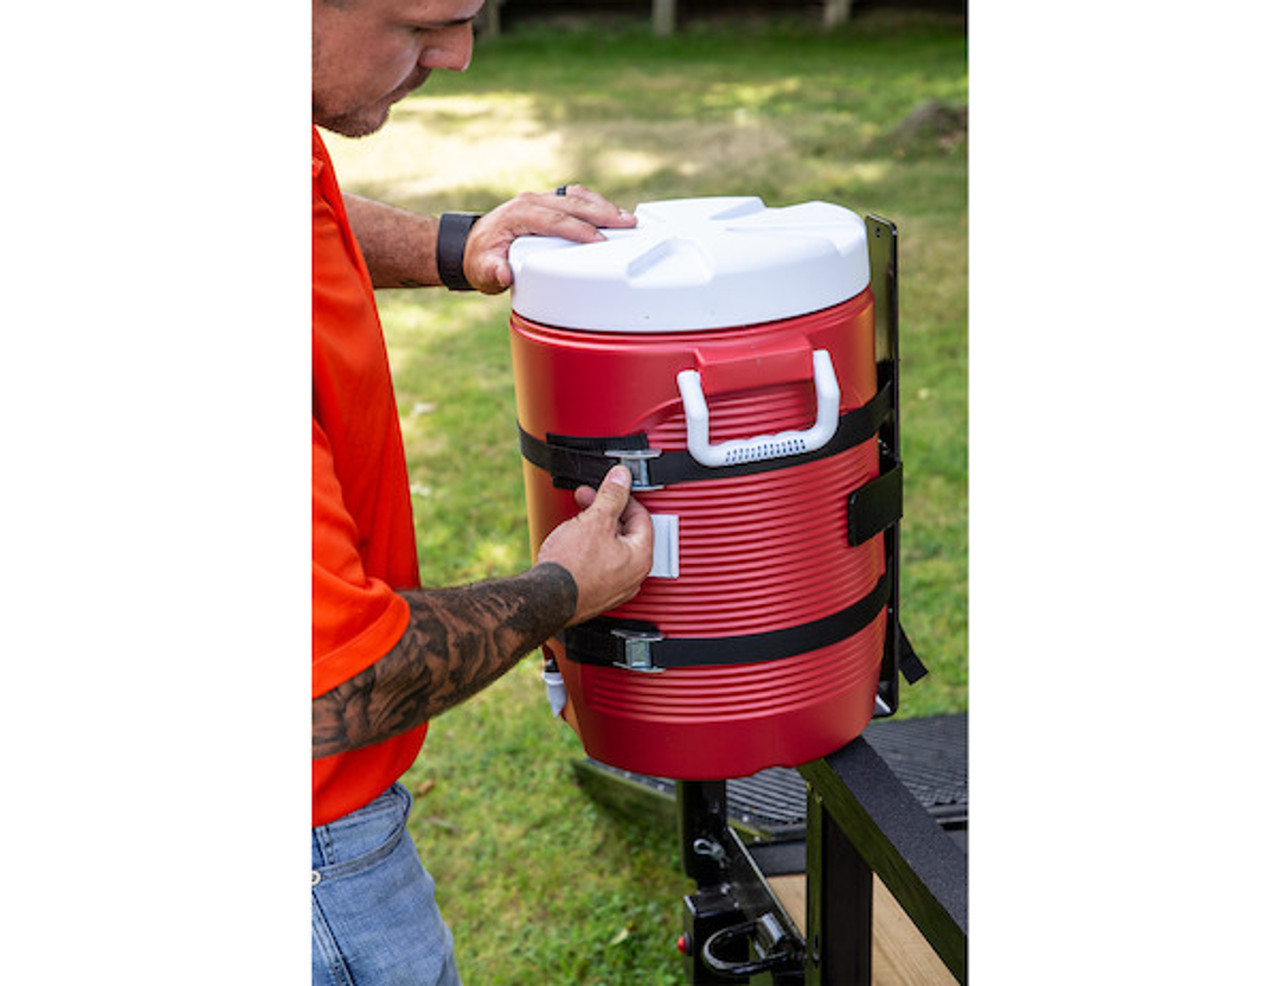 Buyers LT25 Water Cooler Rack for Landscaping Trailers, Utility Vehicles and Garages Picture # 6